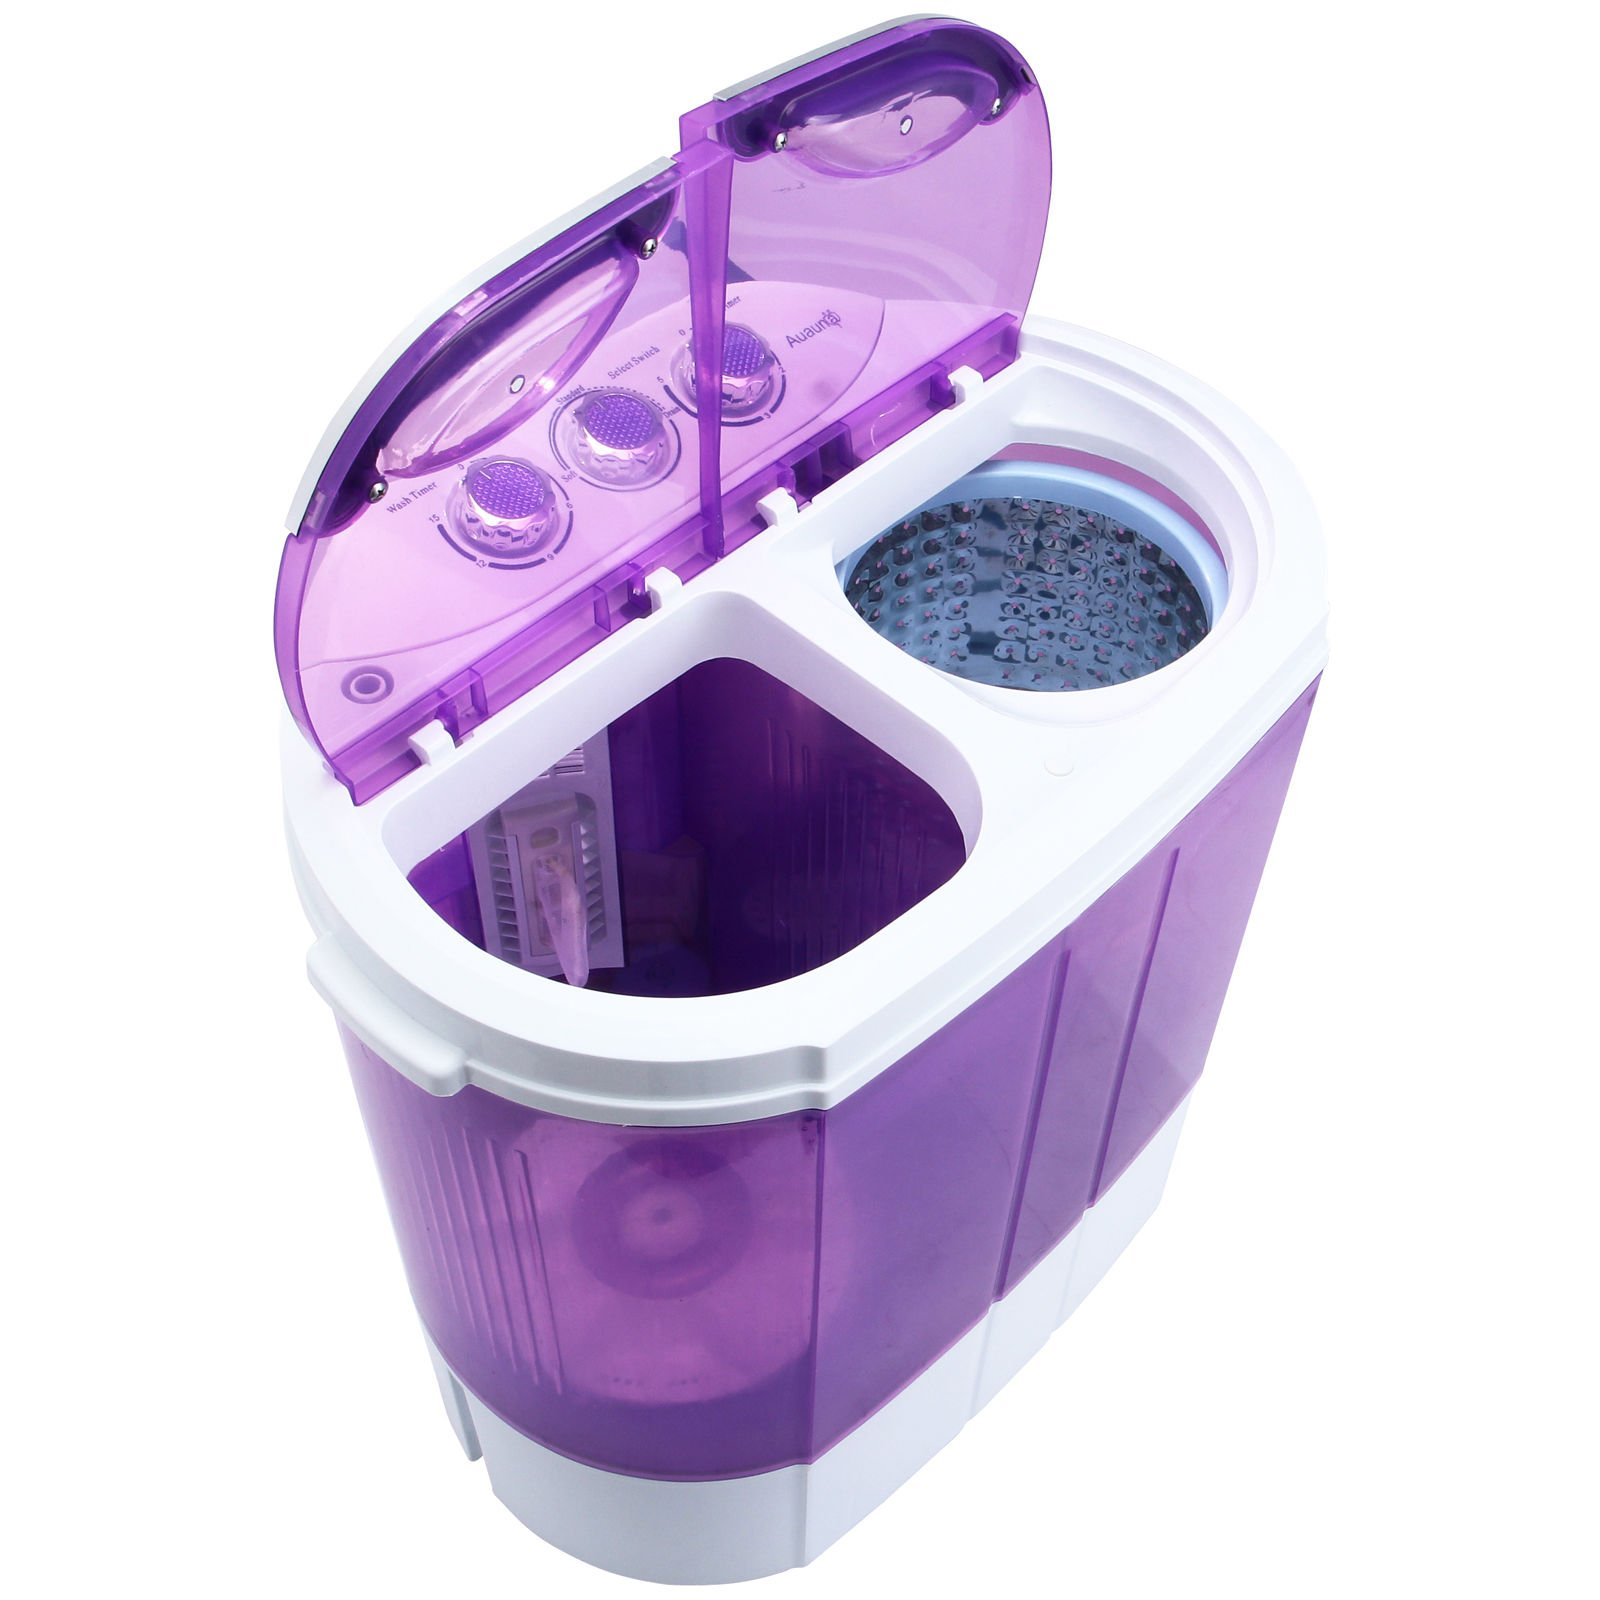 9LB Top Load Portable Mini Electric Washing Machine w/ Spin Dryer |Can Wash Laundry RV Mobile Home College Dorm Student Washer